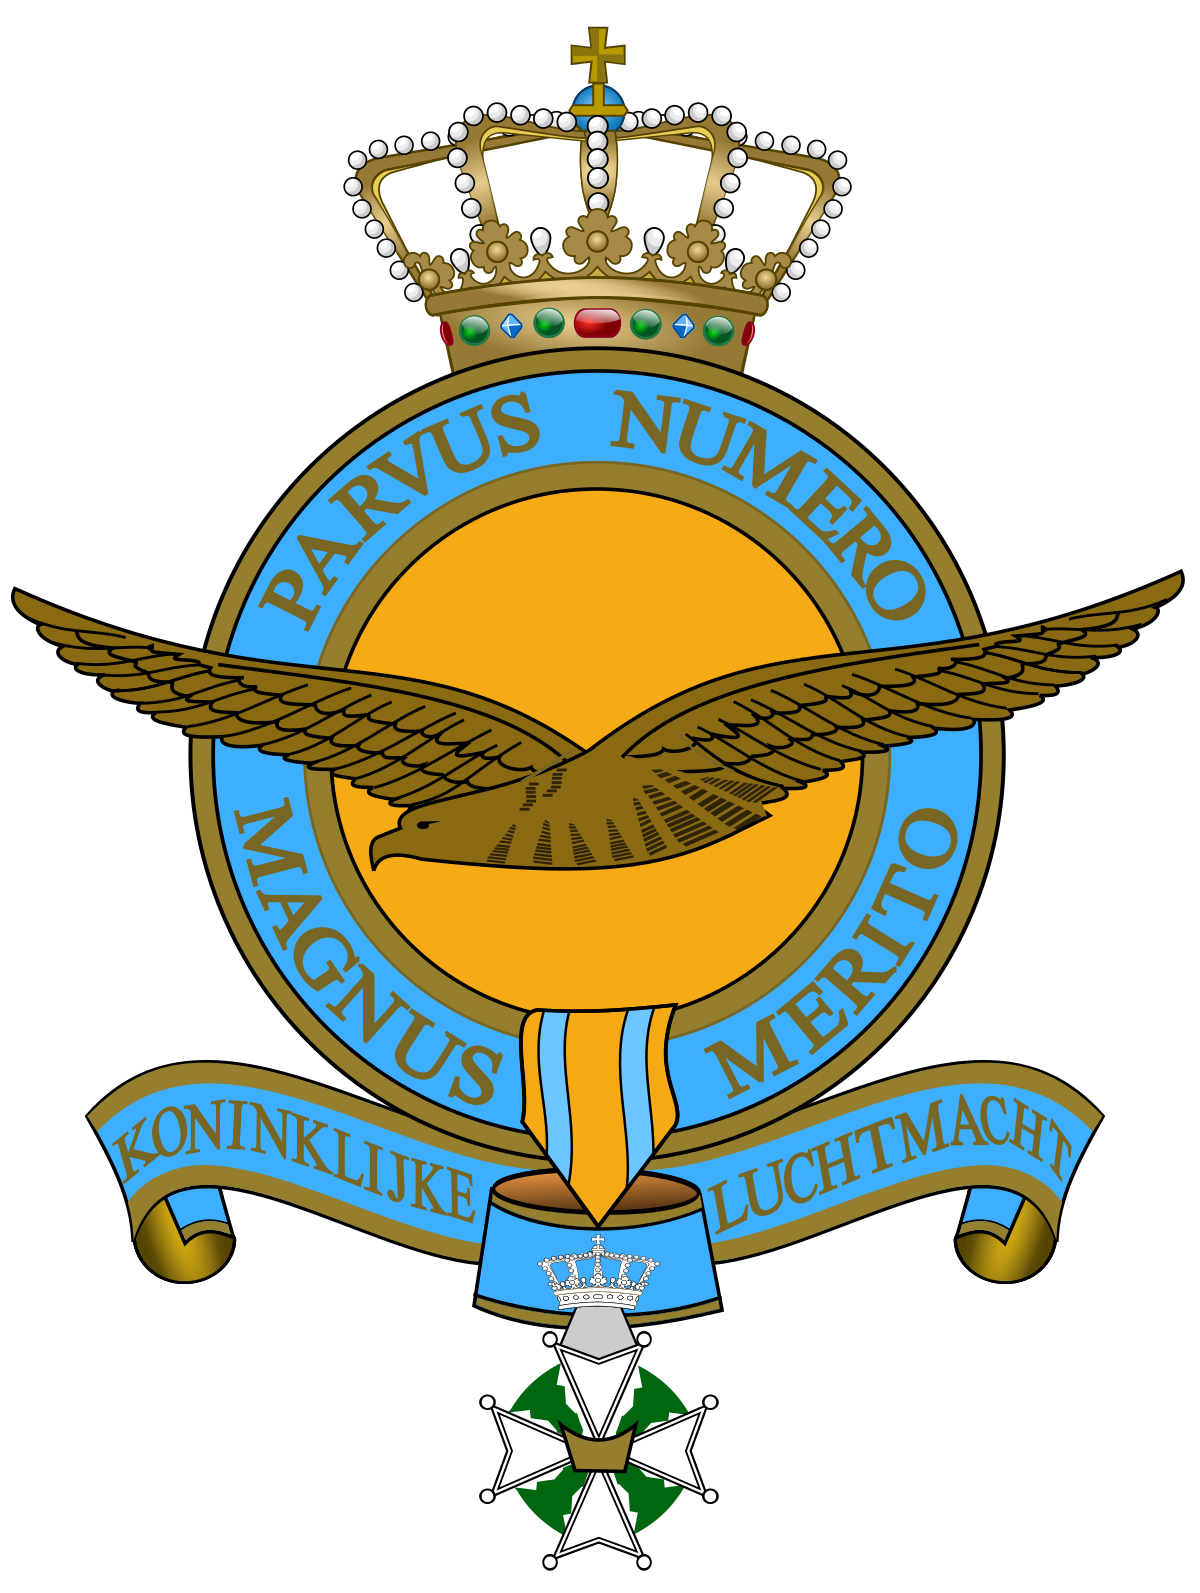 Navy clipart air force officer. Royal netherlands wikipedia